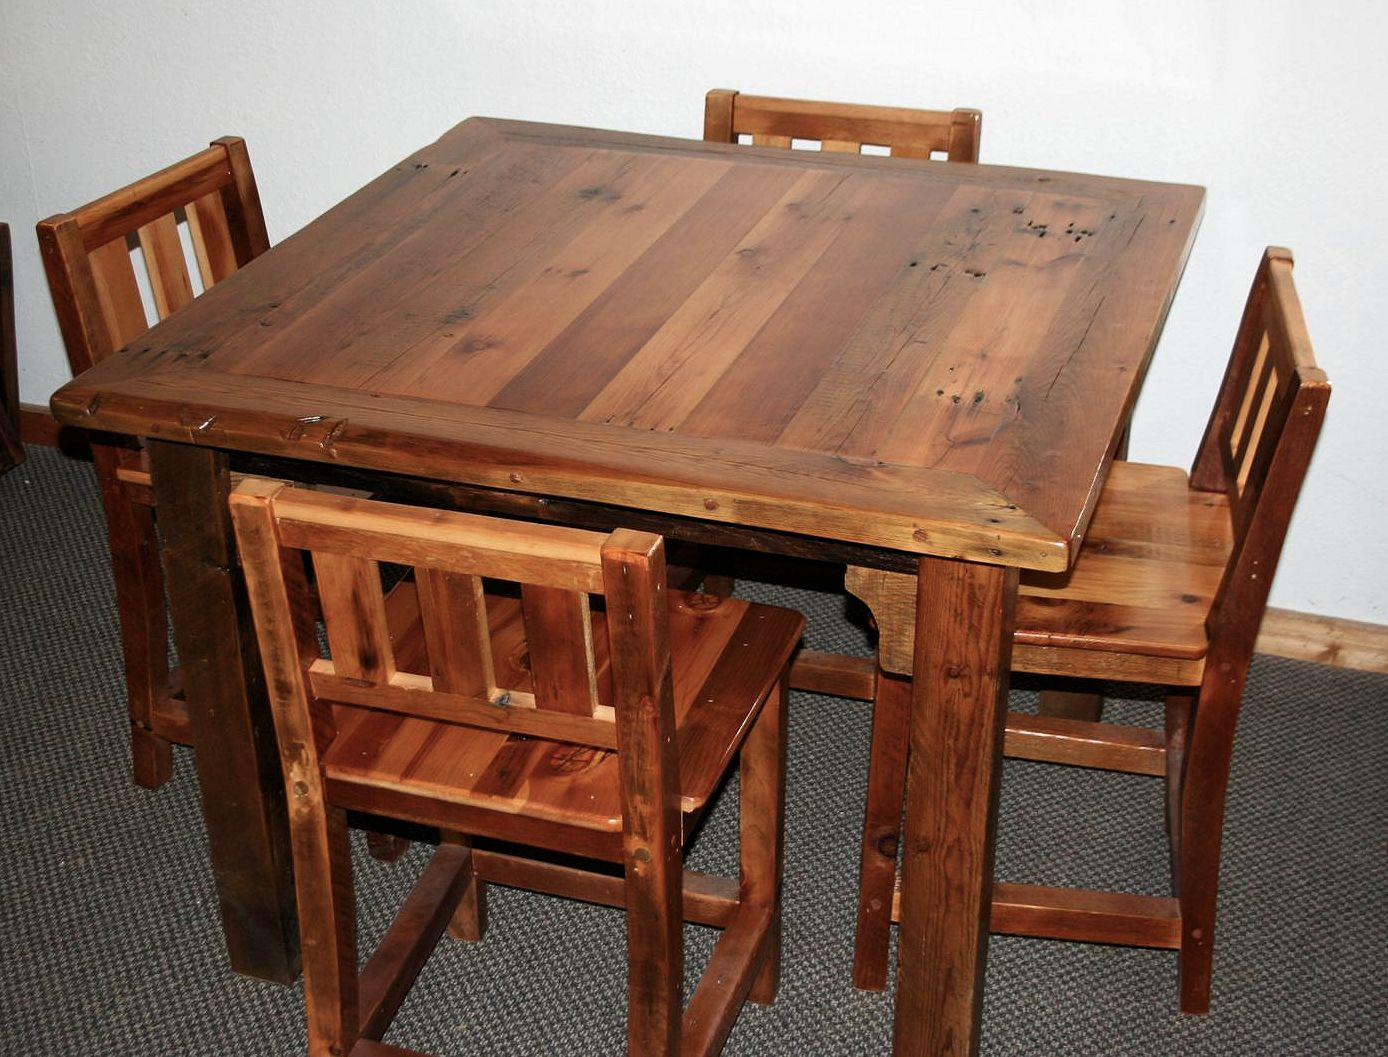 barn-wood-bar-table-chairs.jpg